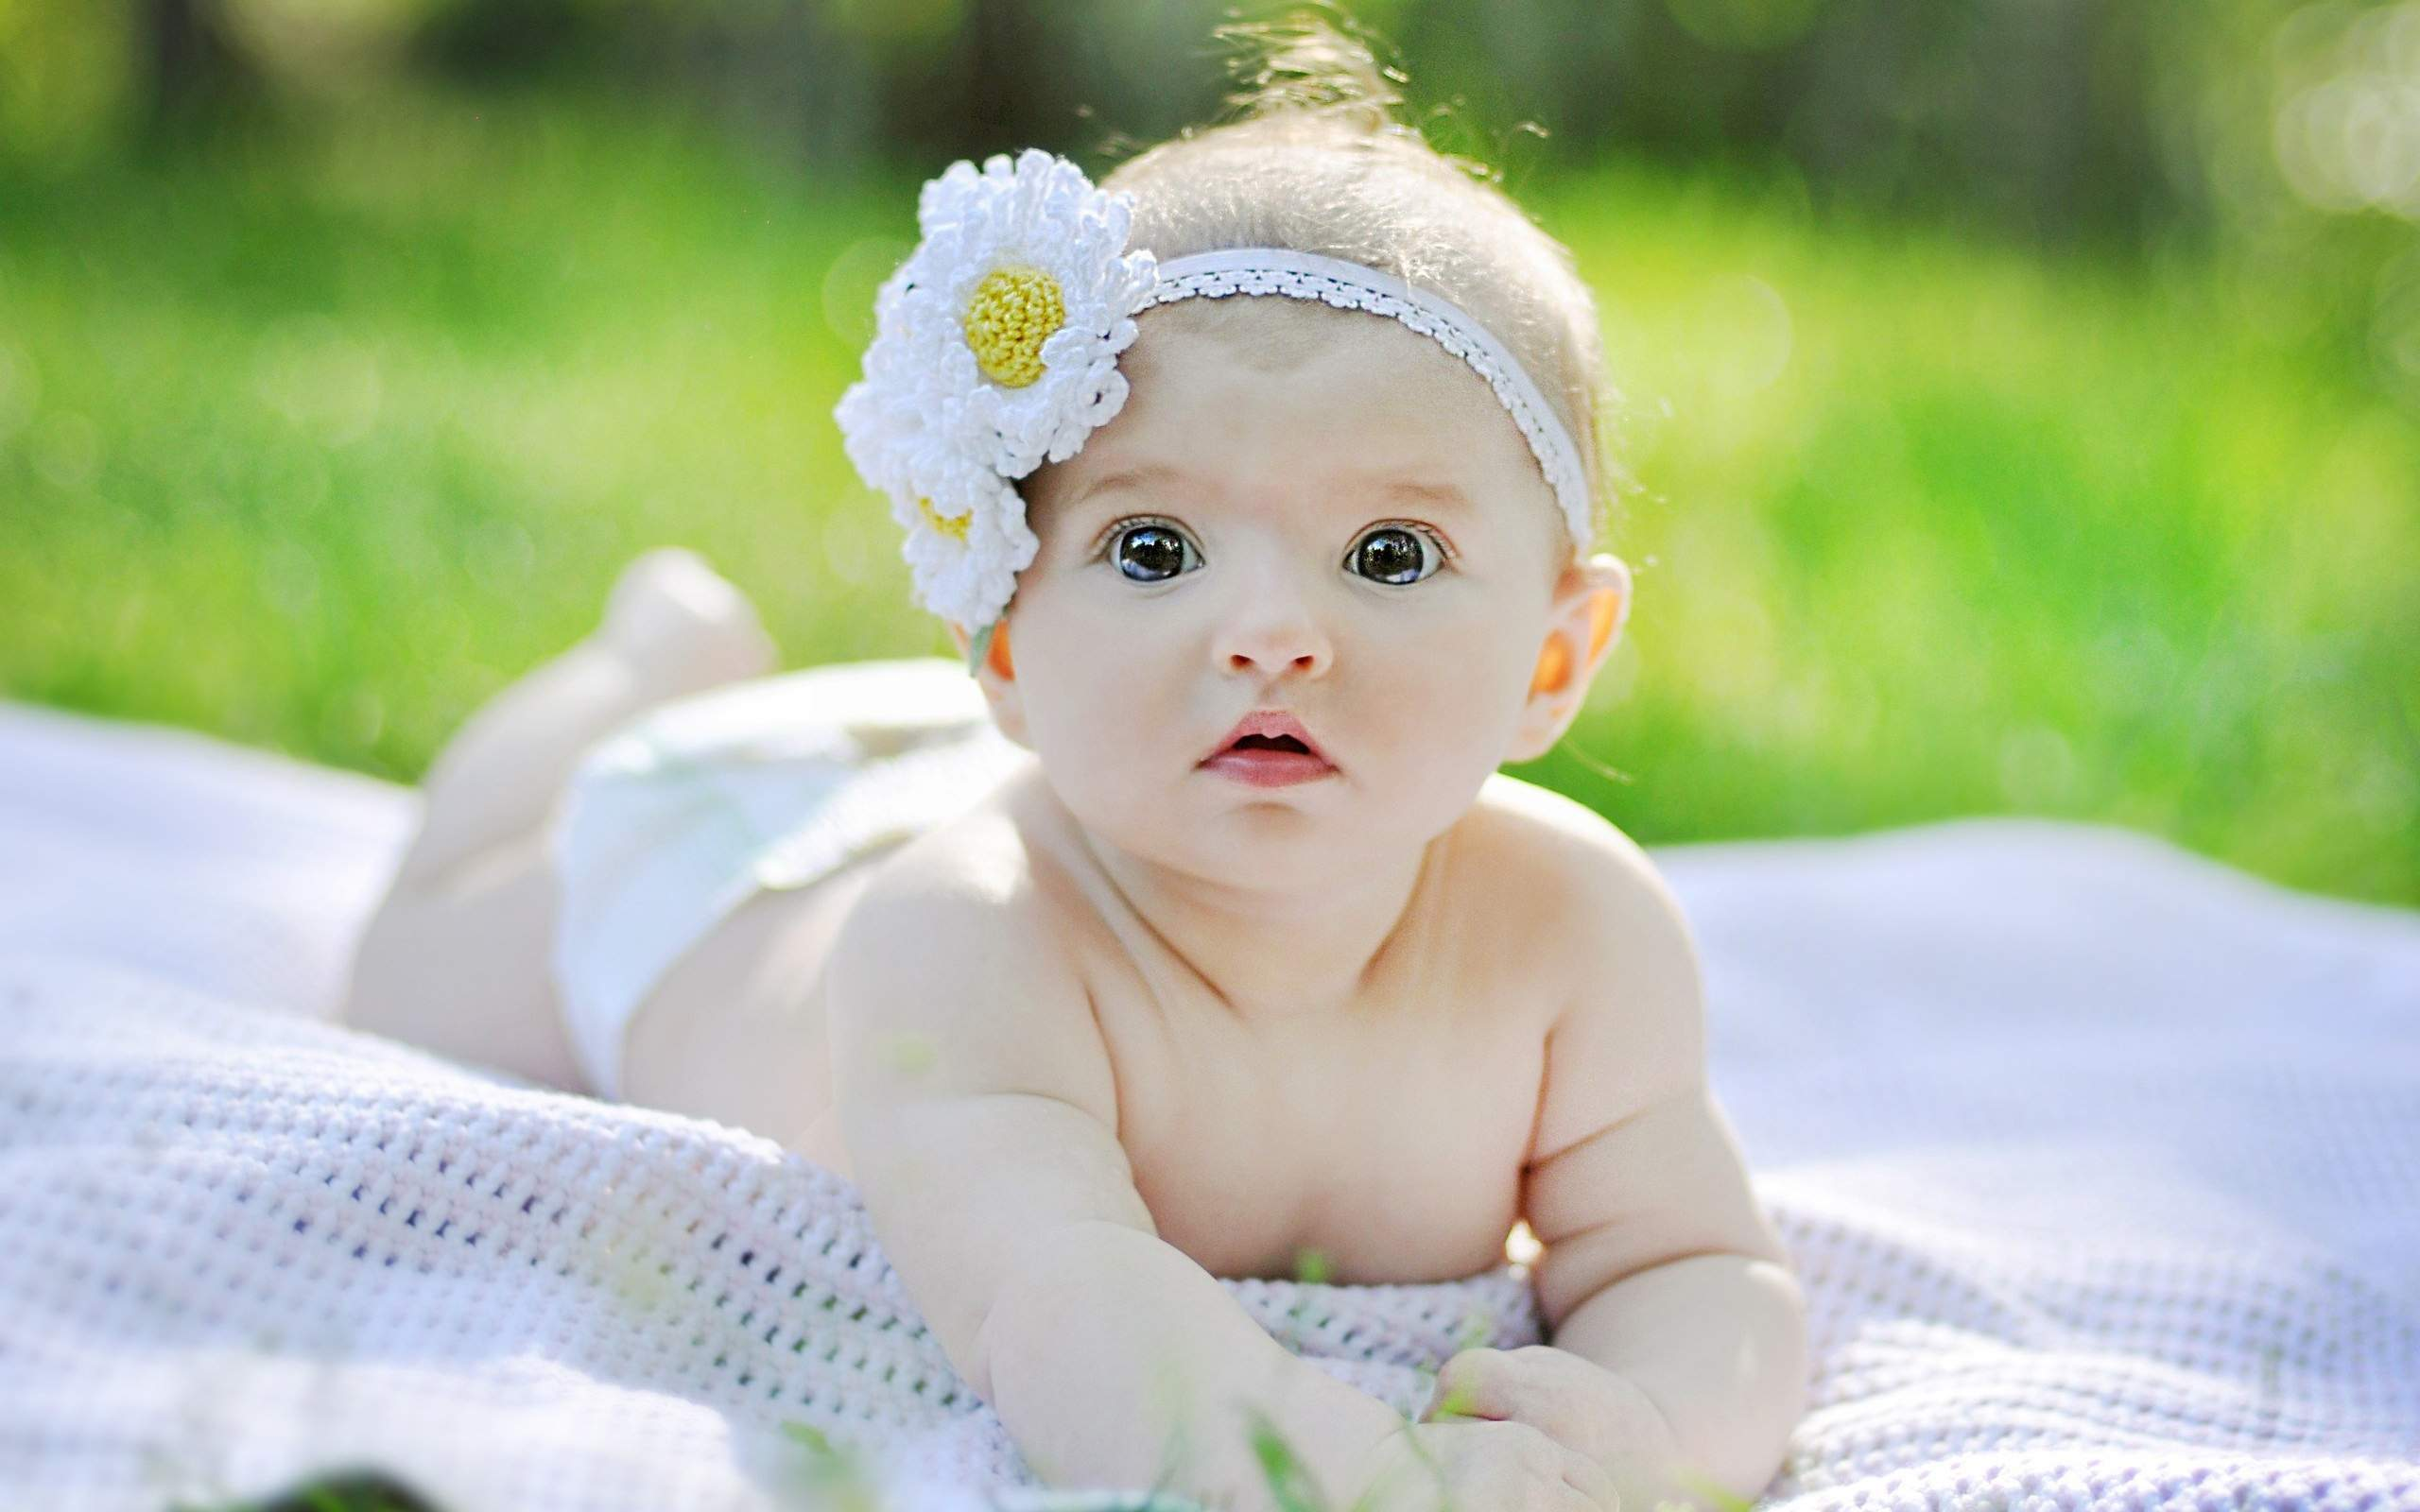 Backgrounds Cute Baby Girl Hd For Desktop Laptop Mobile With Small ...